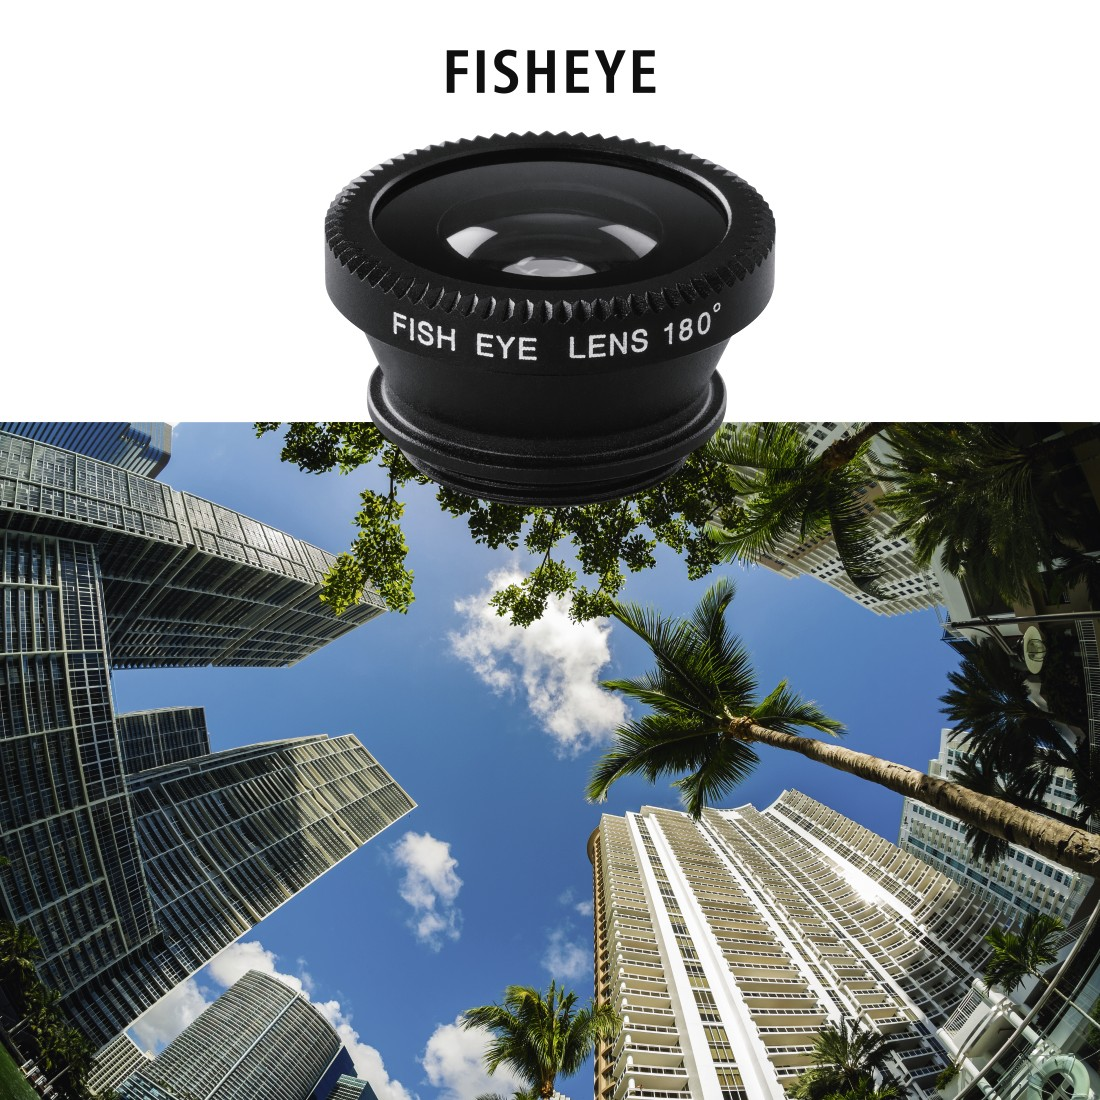 awx High-Res Appliance - Hama, 3in1 Uni Lens Kit for Smartphones and Tablet PCs